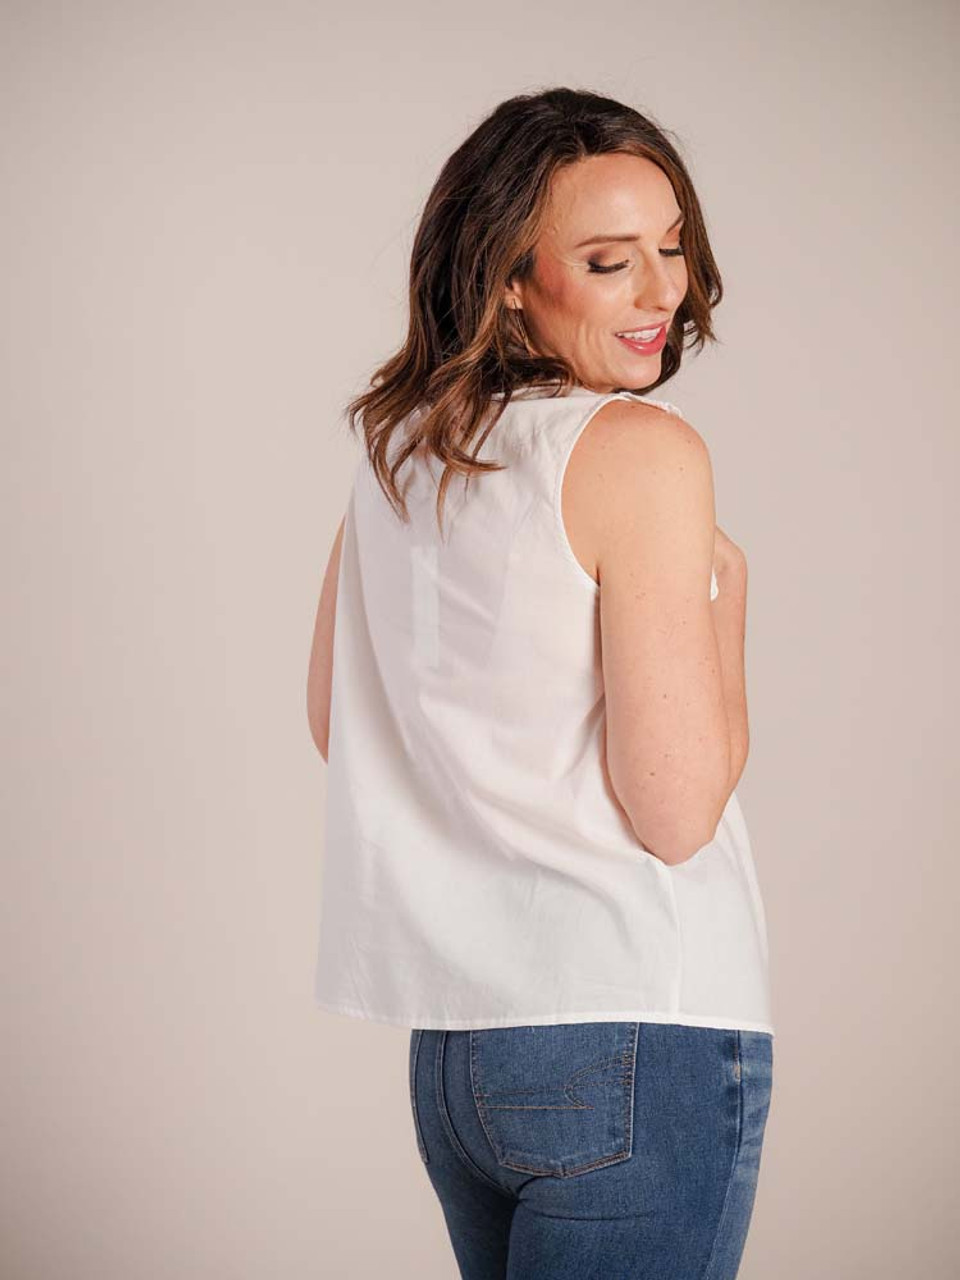 Pretty and lightweight blouse. Round neck with cord tie; eyelet lace front smock and ruffle detail; sleeveless